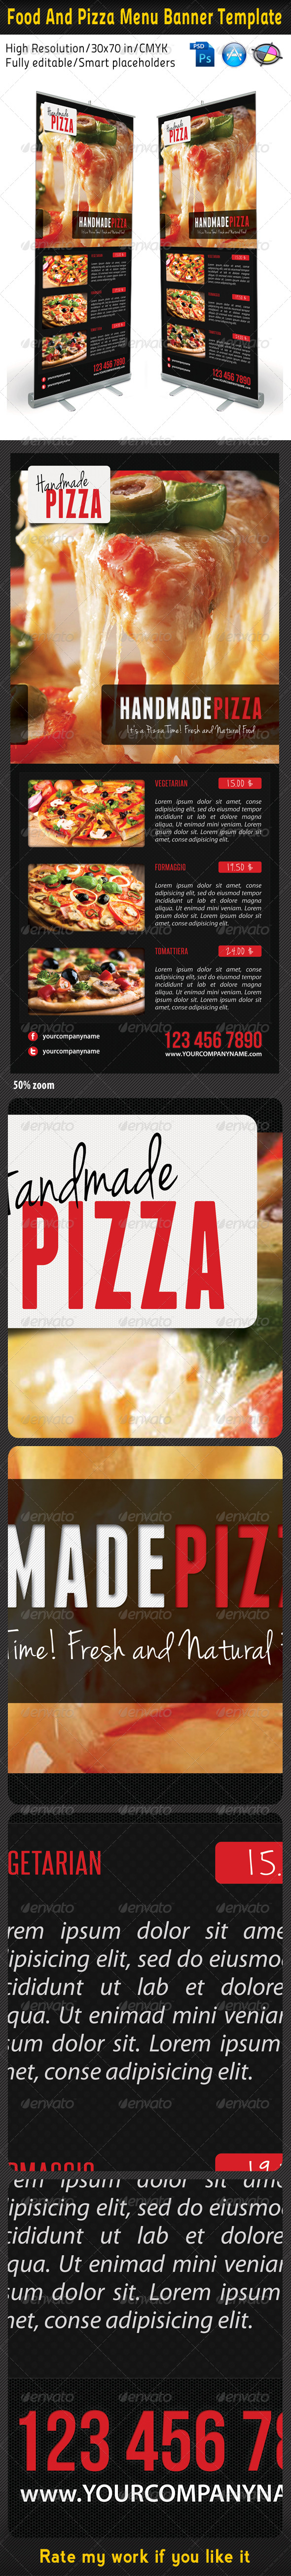 Food And Pizza Menu Banner Template 02 - Signage Print Templates